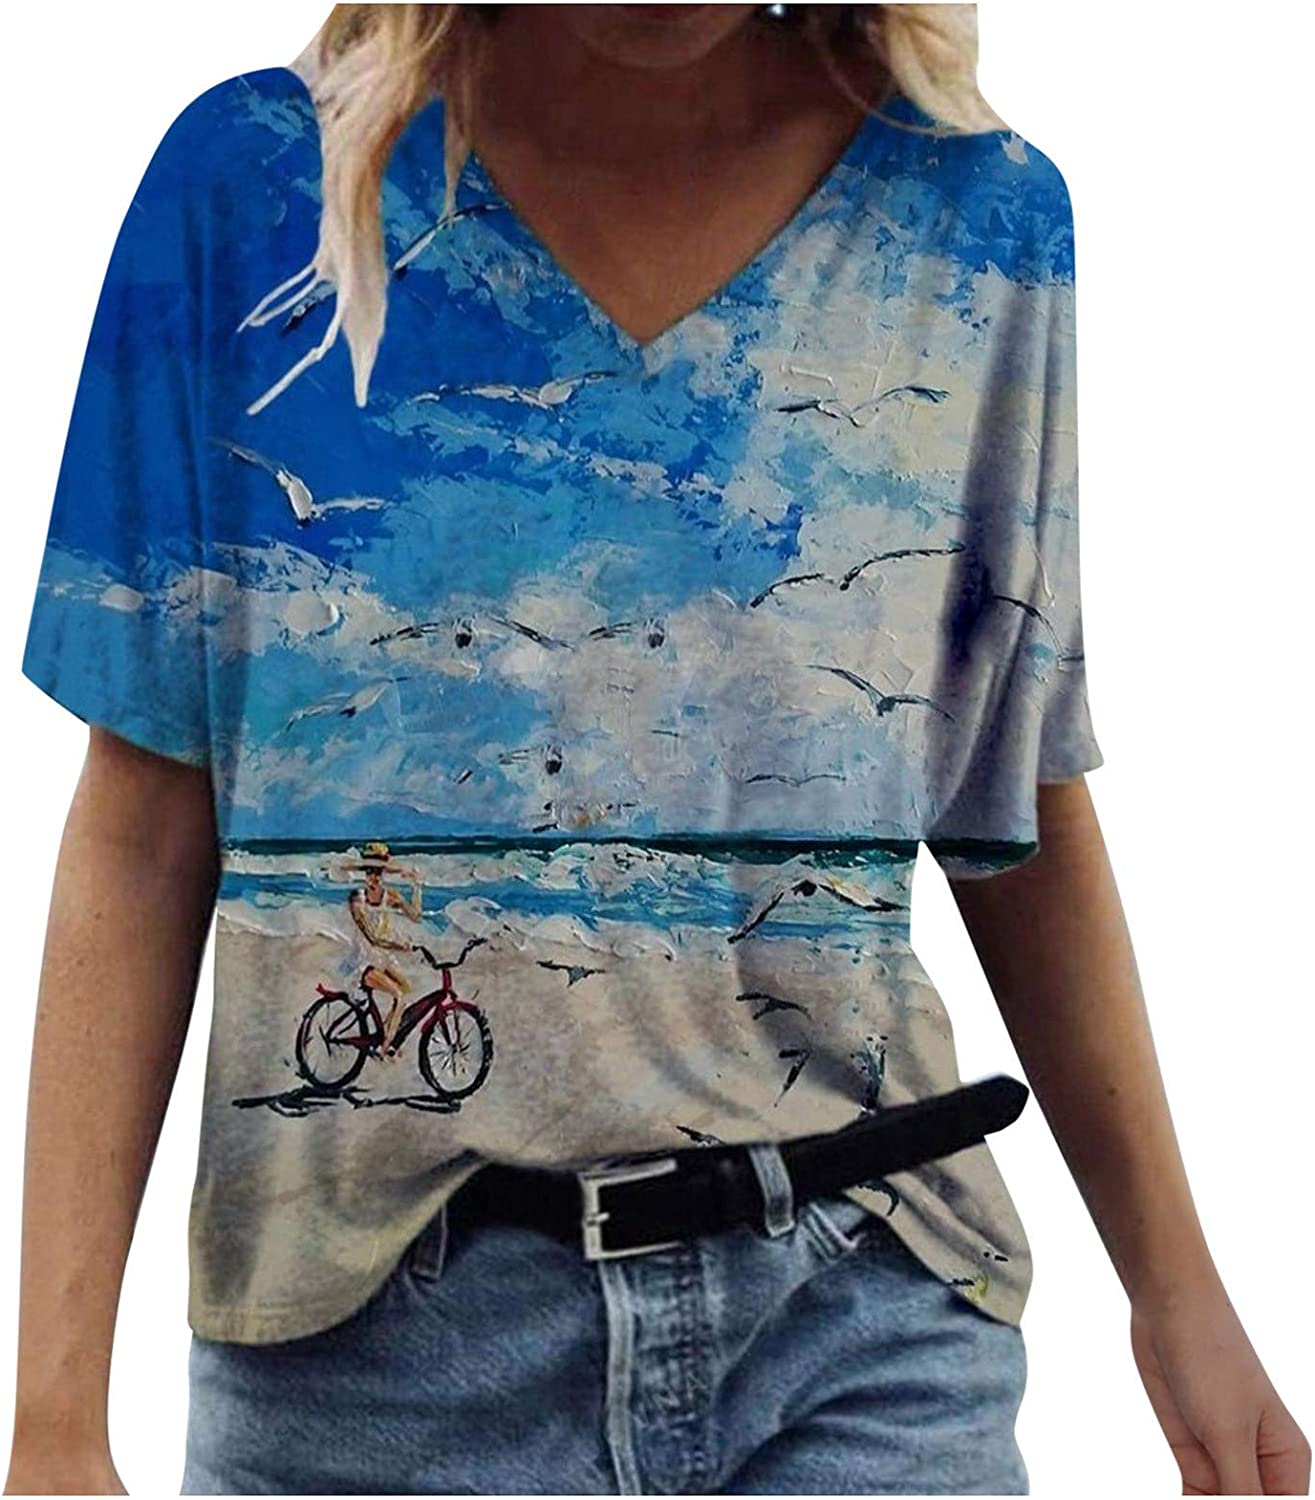 Short Sleeve Tops for Women,Womens Short Sleeve T Shirts Tees Casual Loose Fit Strappy Tshirts Tops